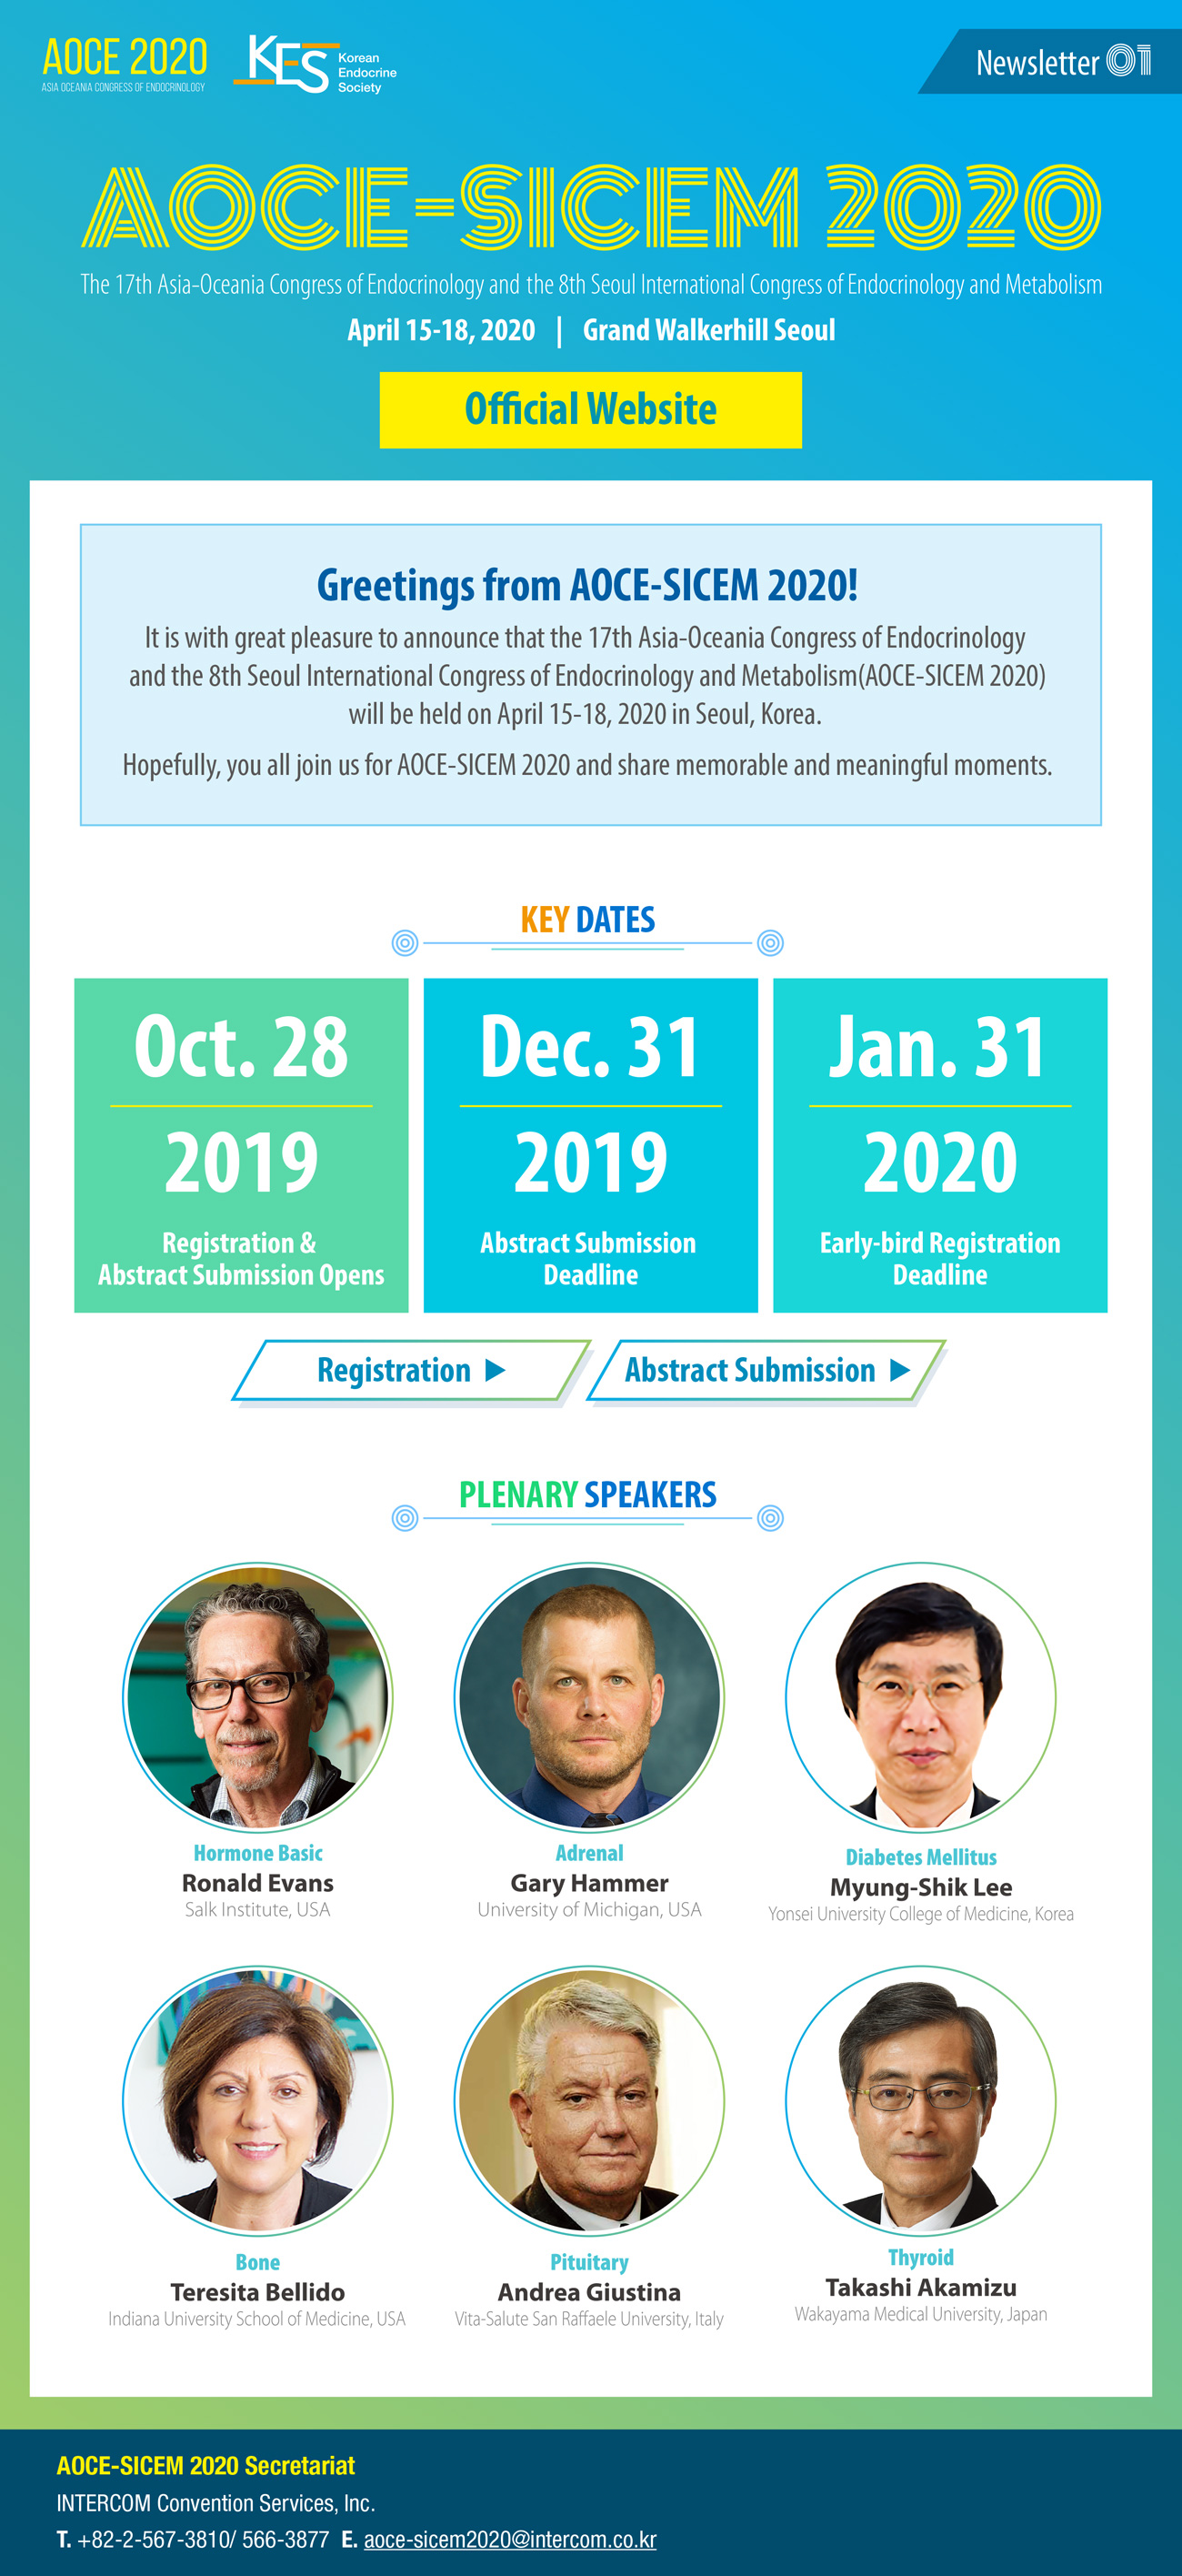 The 17th Asia-Oceania Congress of Endocrinology and the 8th